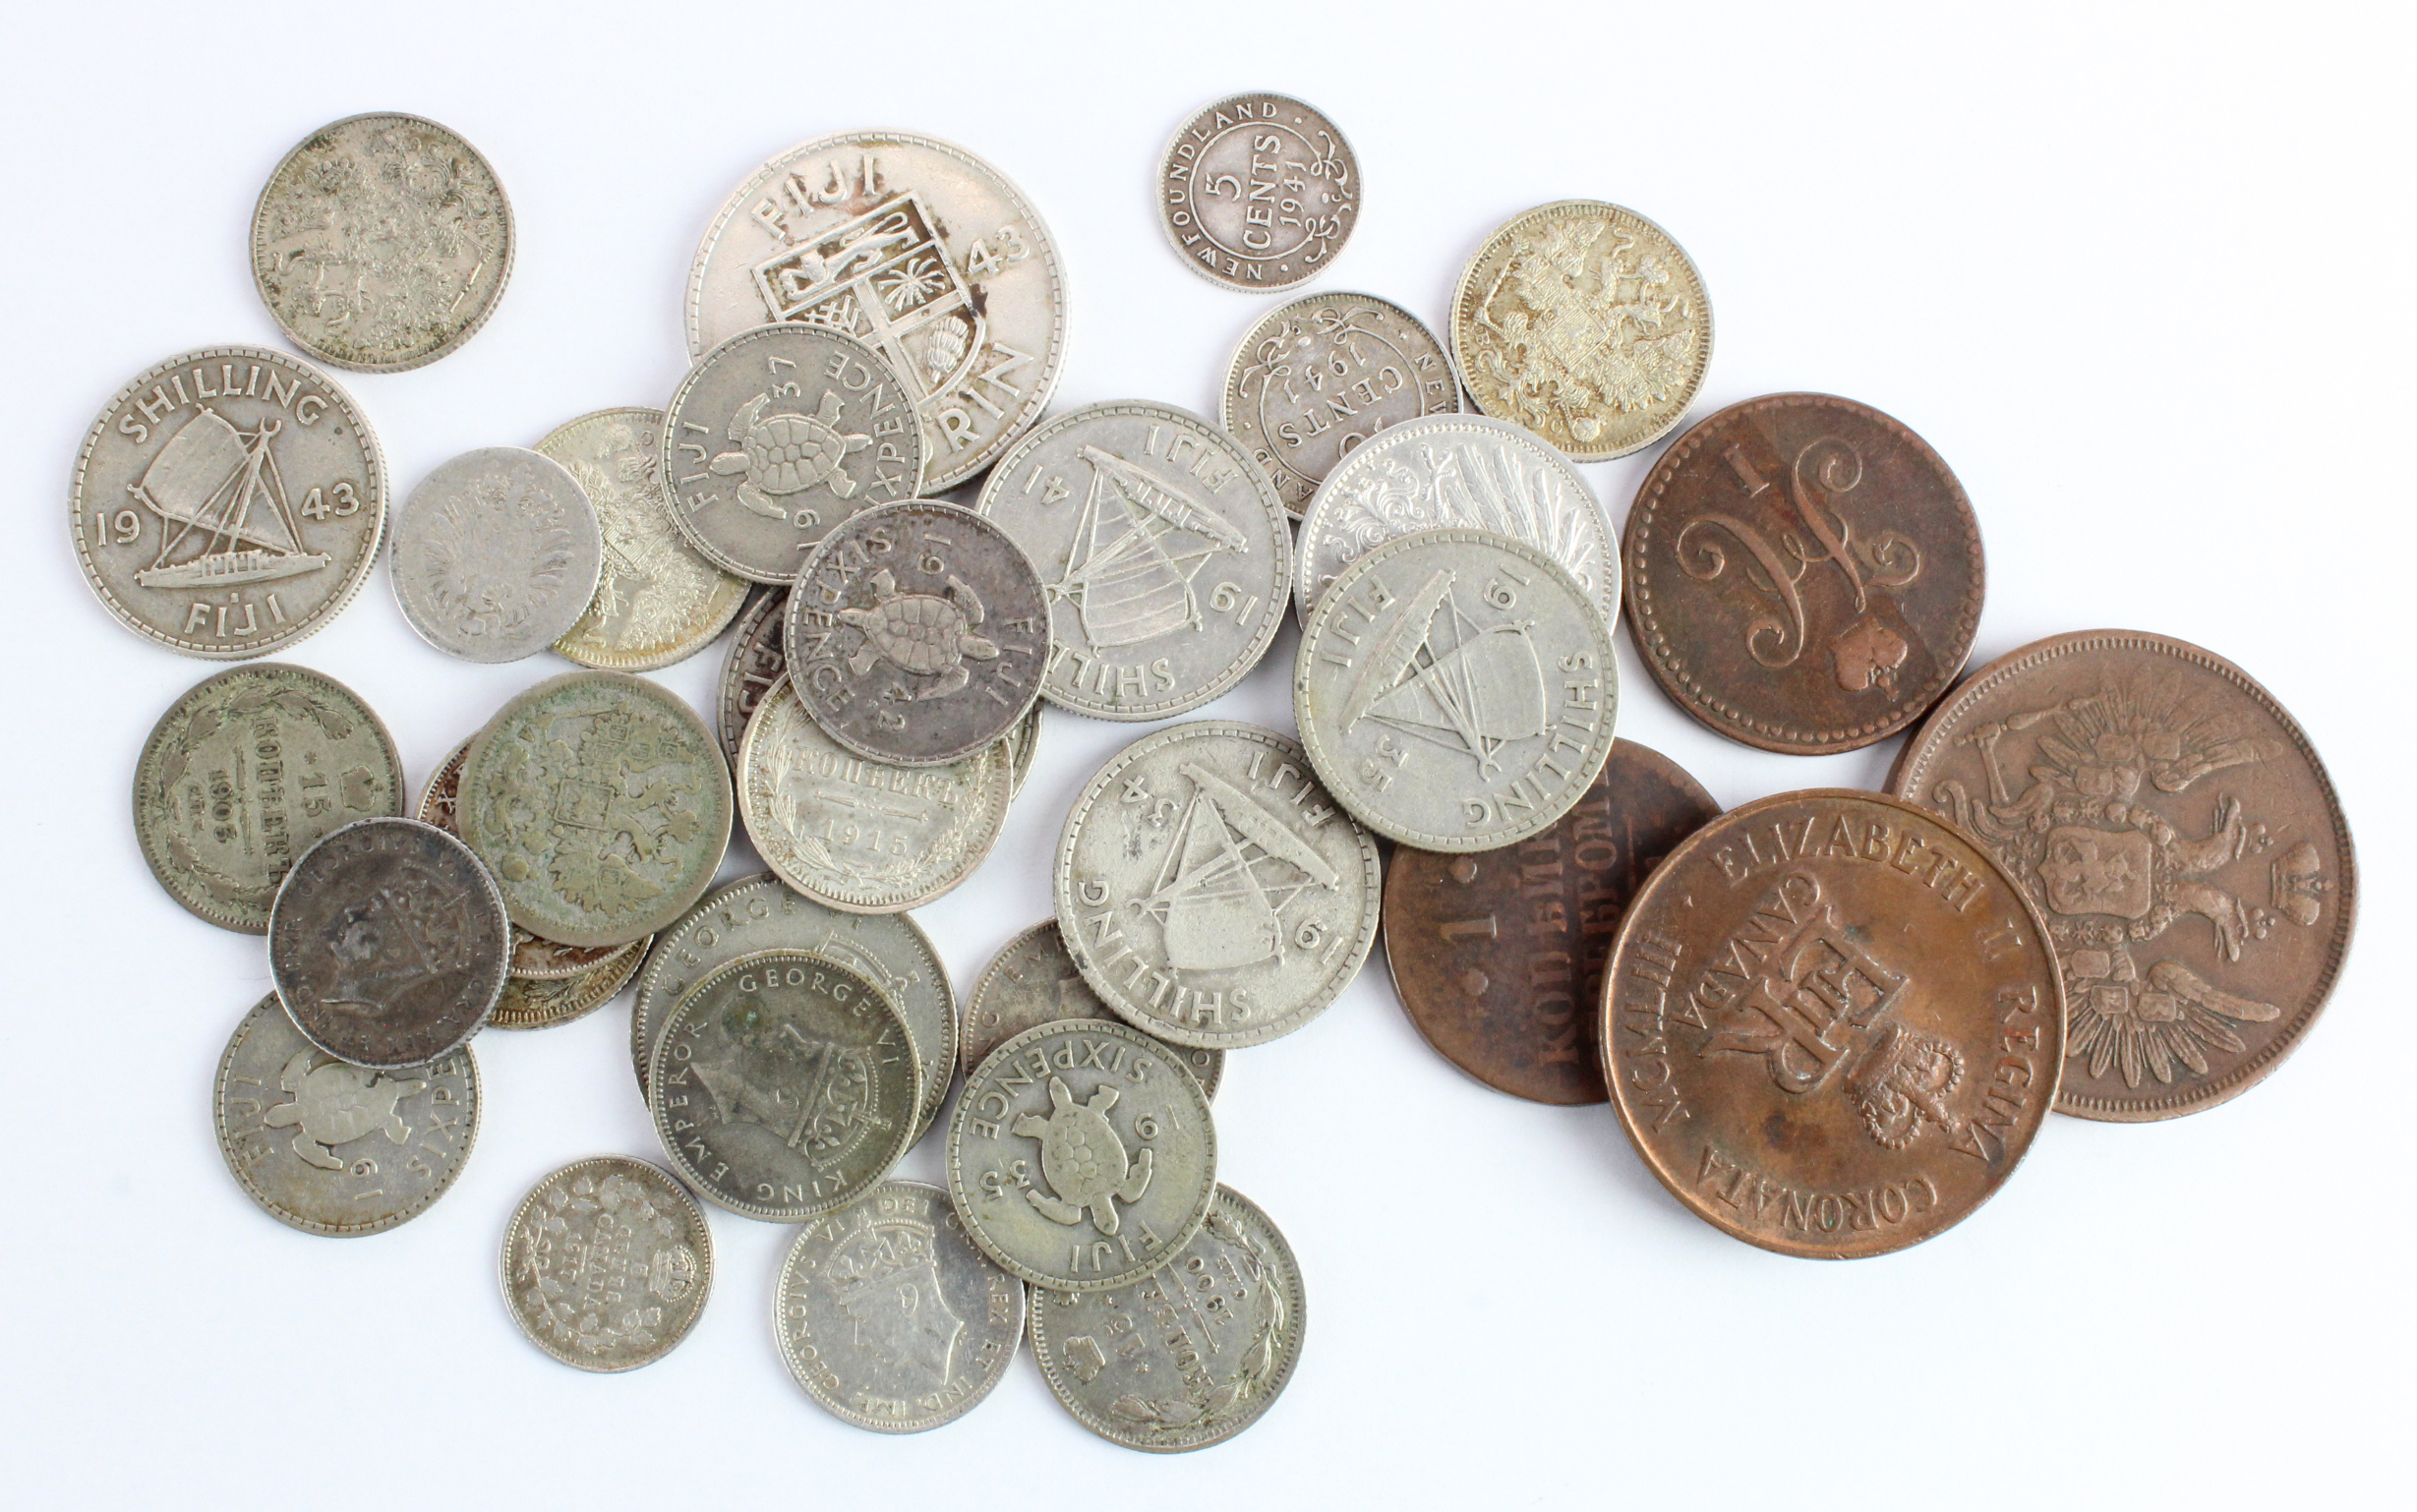 World Coins (34) mostly silver, noted Russian Empire, Fiji, Germany, Canada, Newfoundland. Mixed